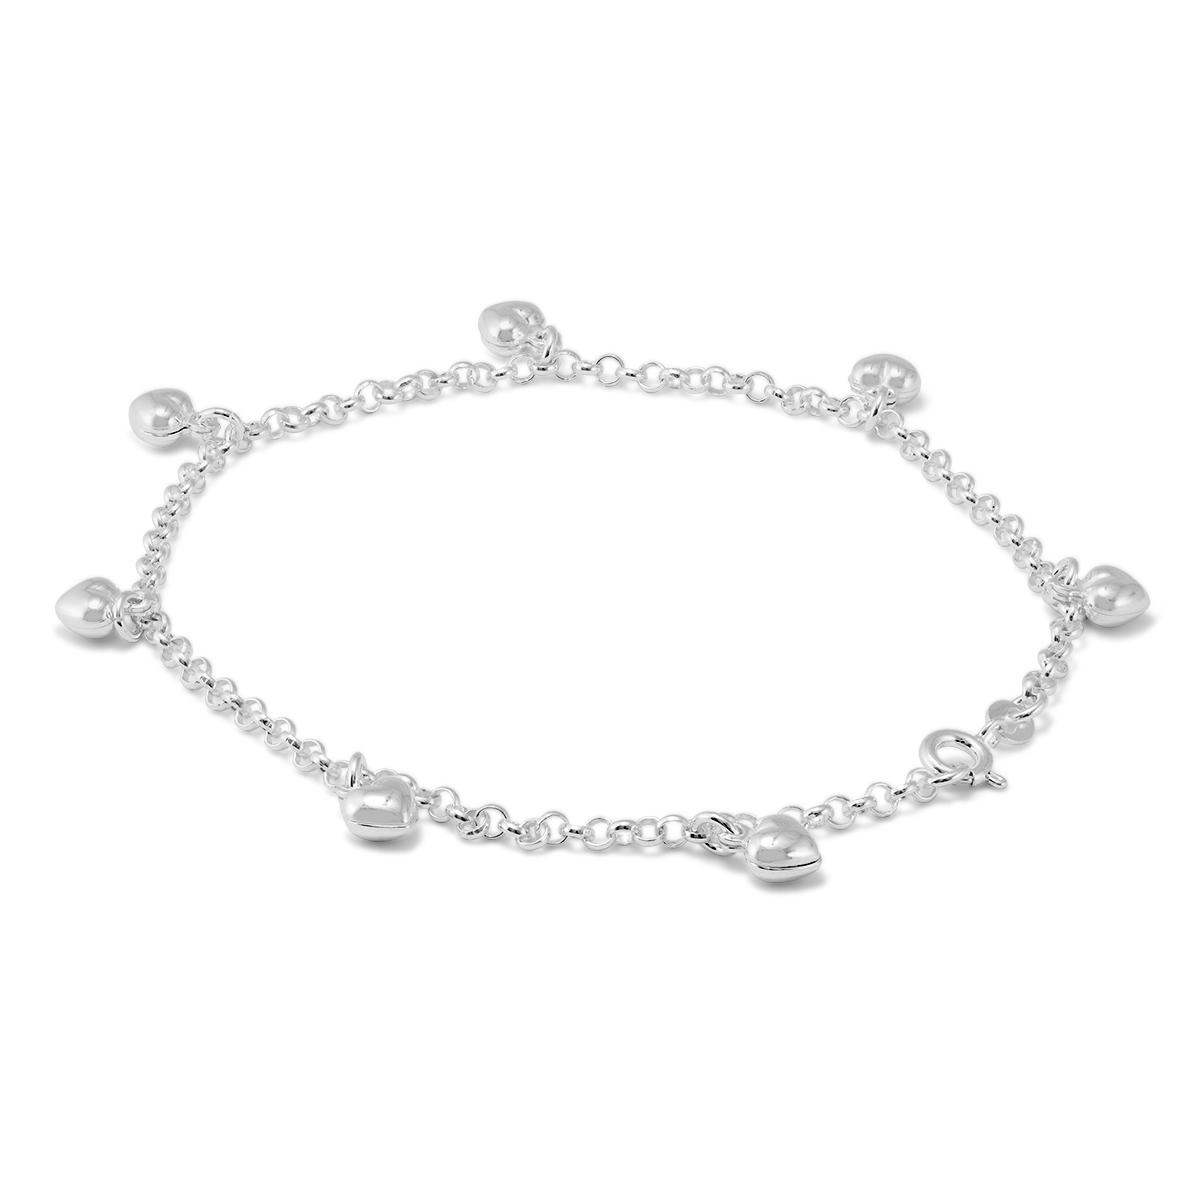 Heart Charm Anklet in 925 Sterling Silver